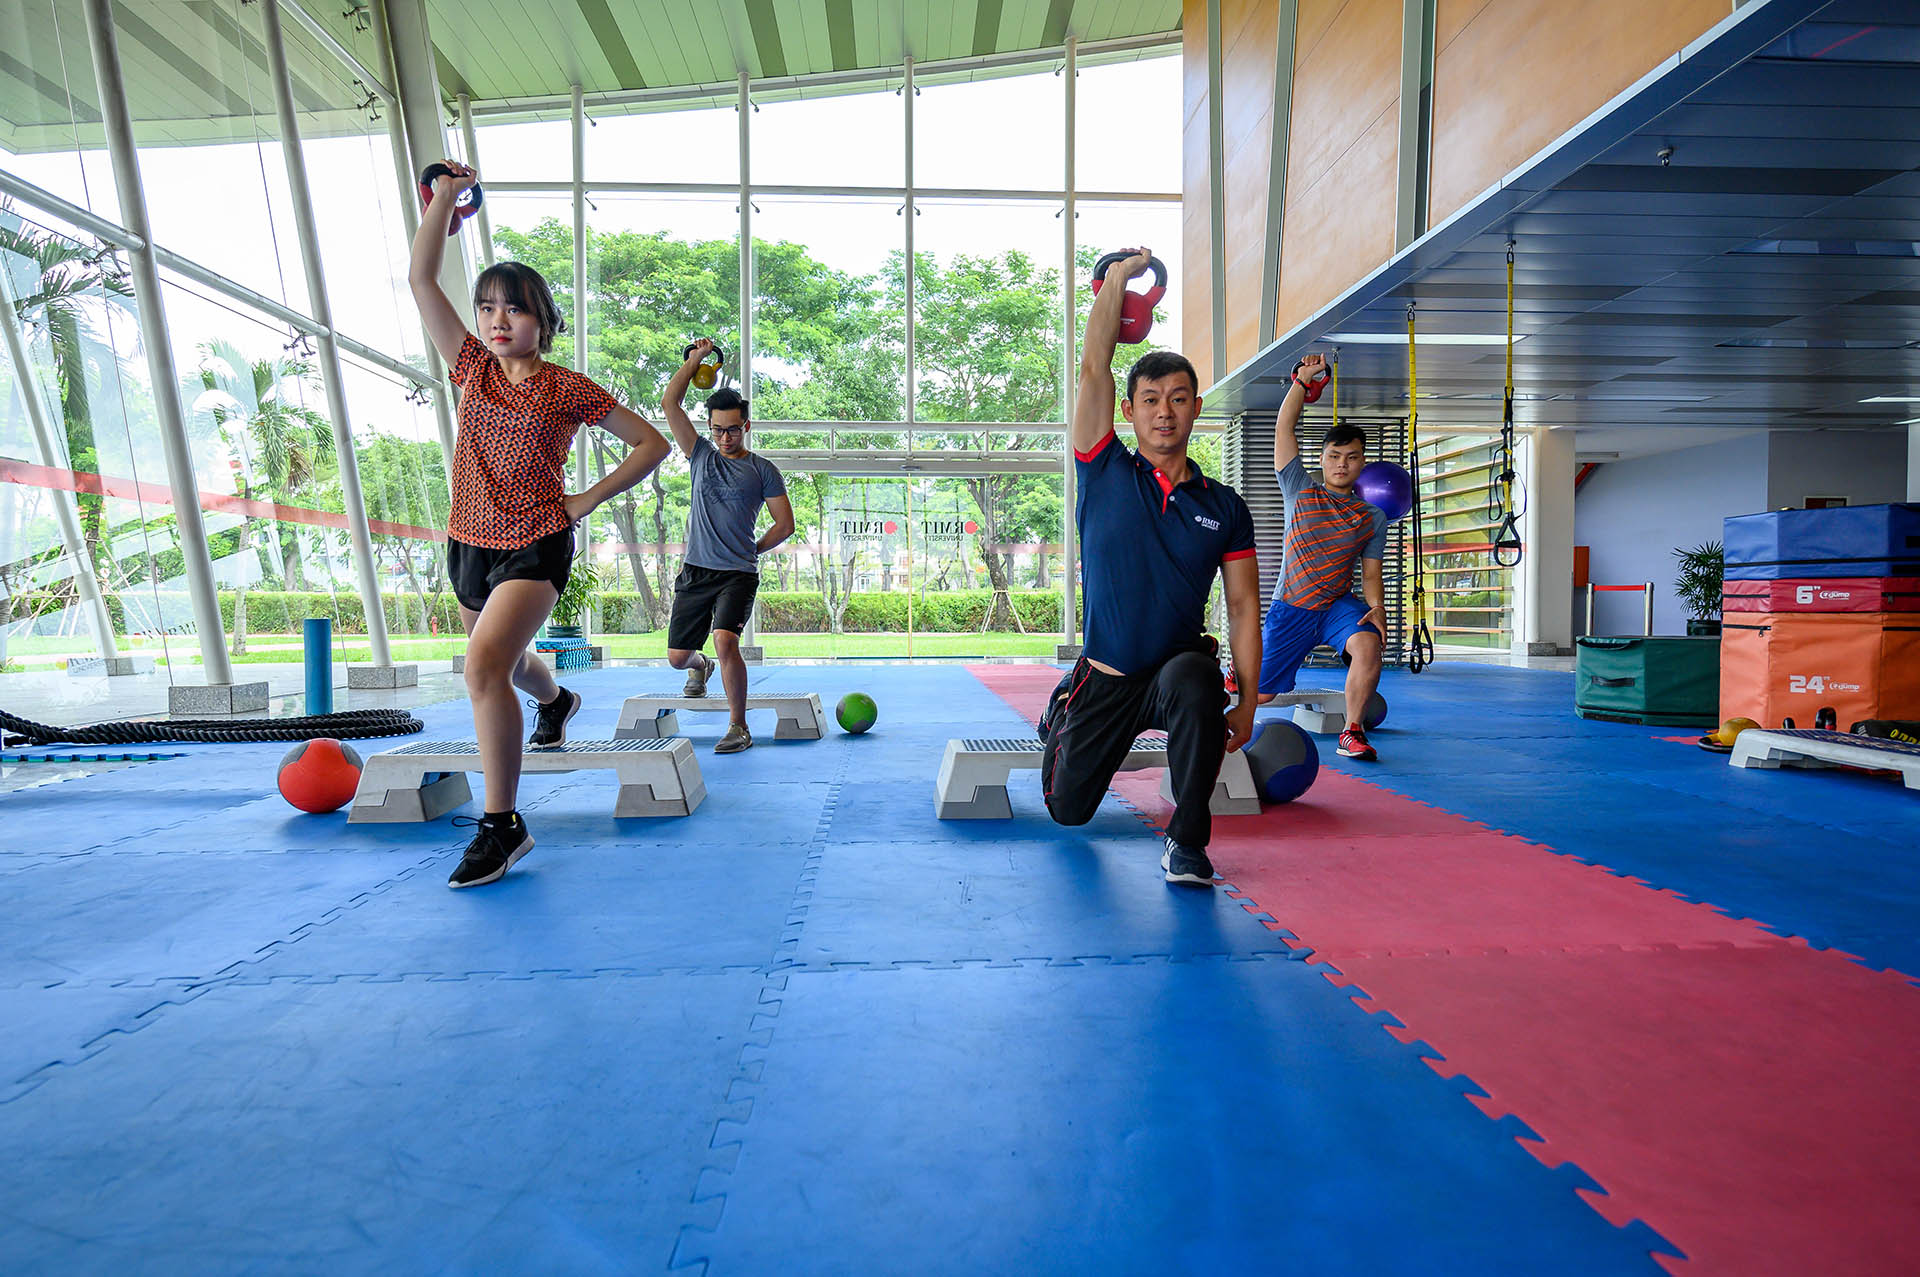 sgs students exercise in rec area